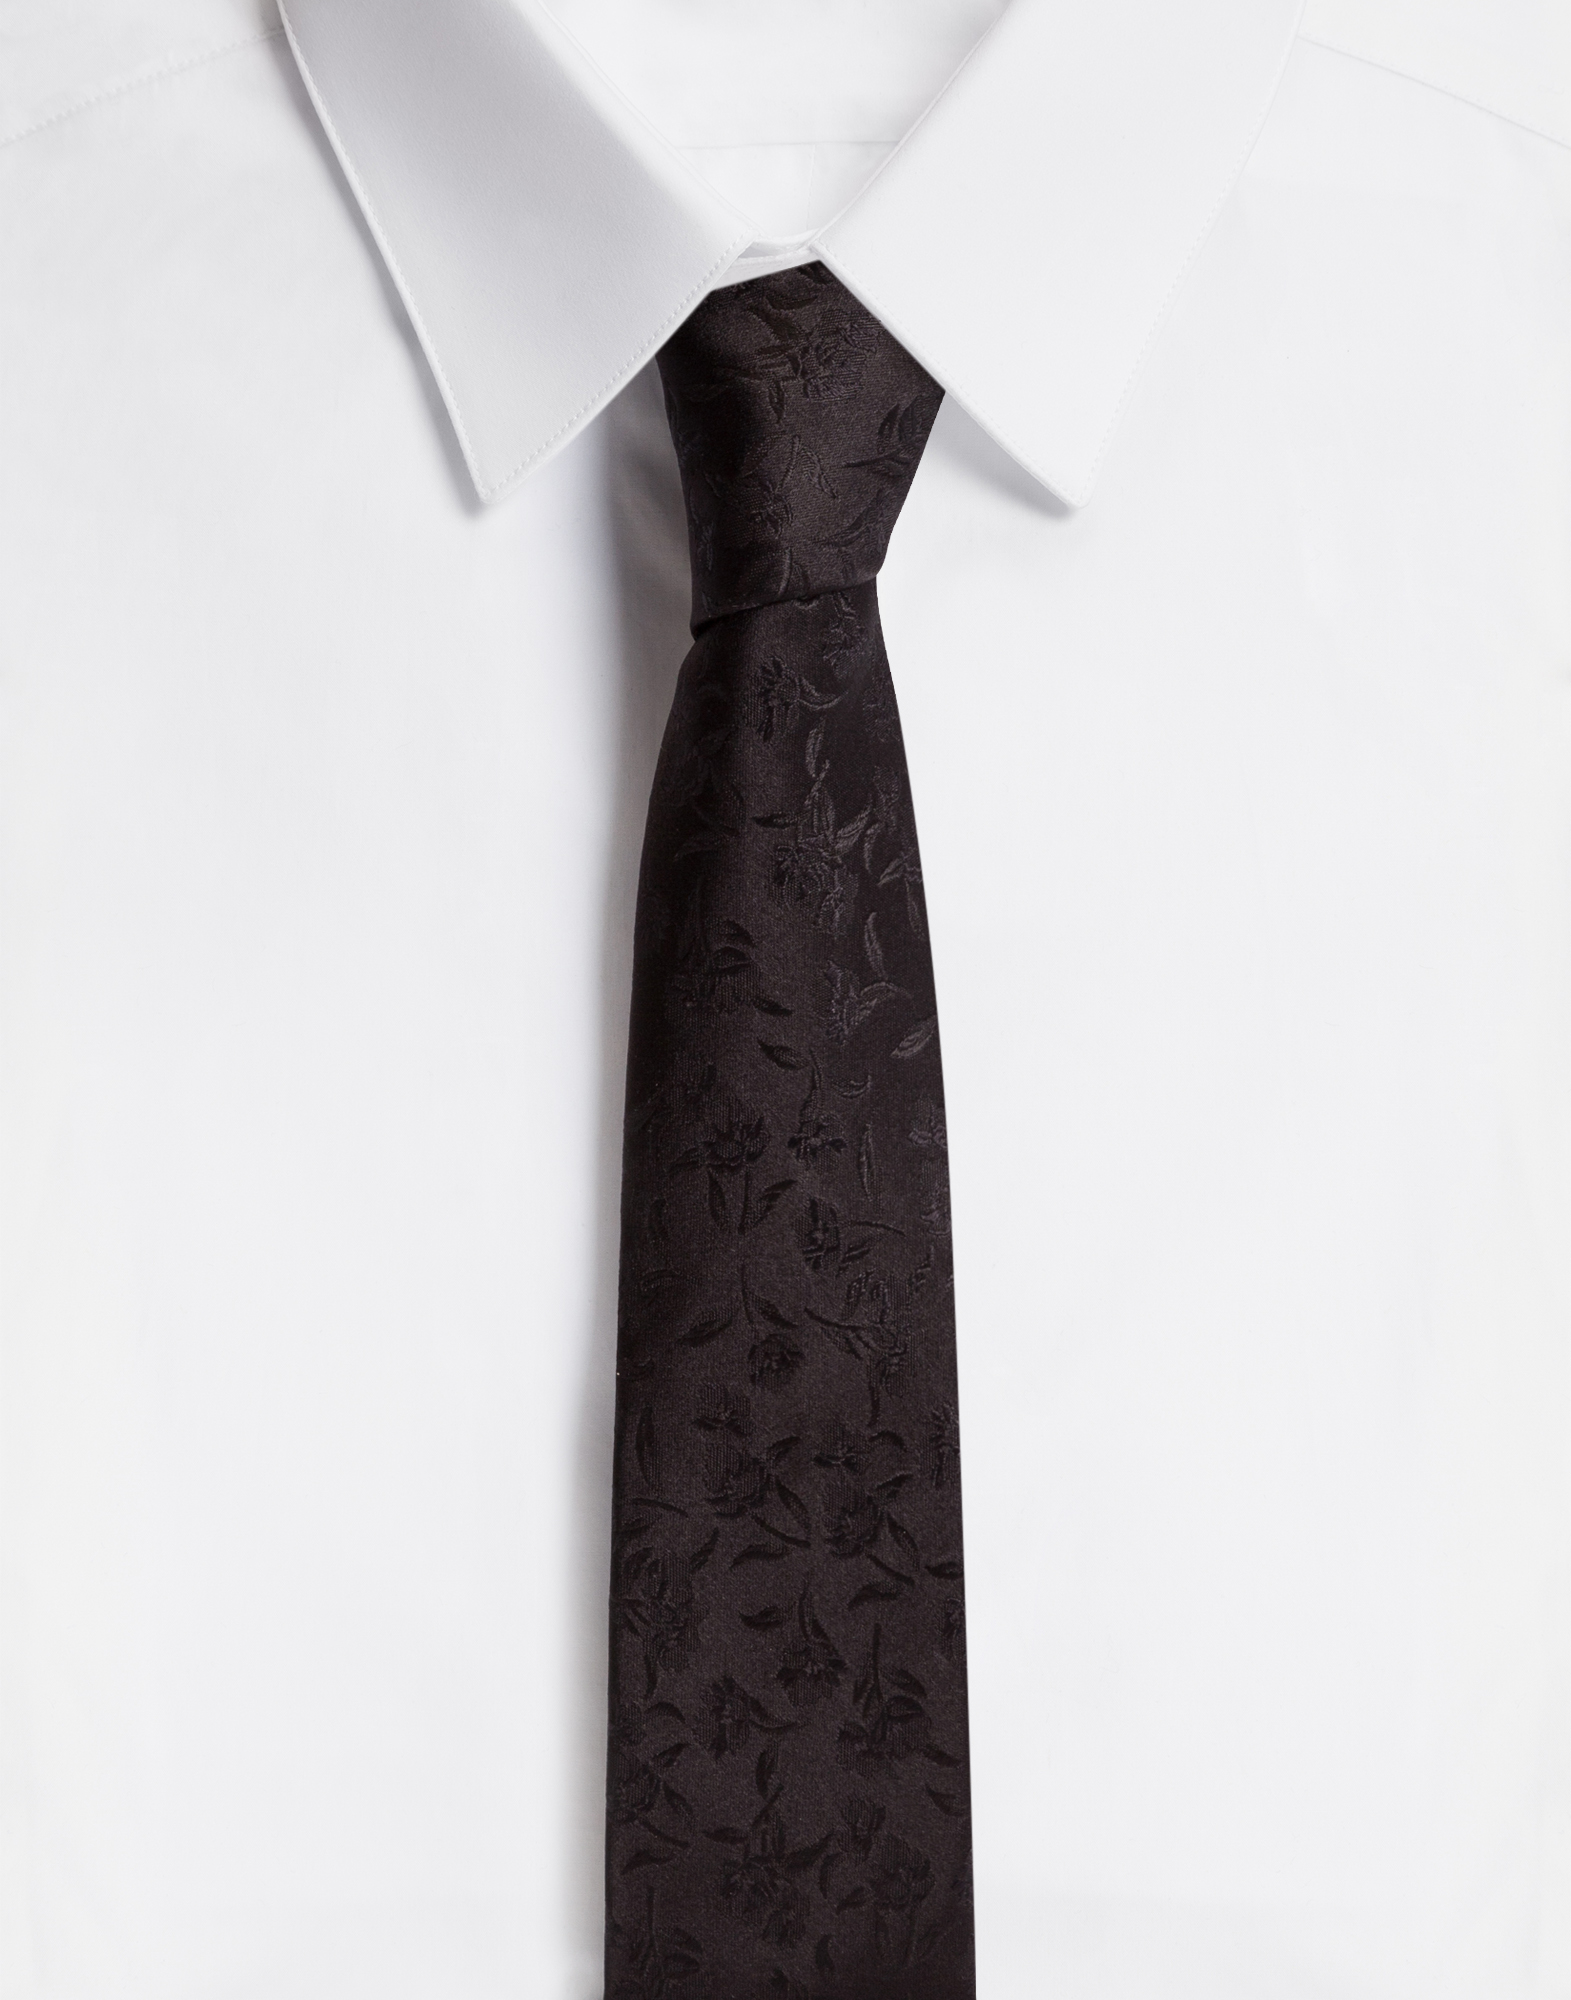 Dolce & Gabbana TIE WITH 6 CM - 2.4 INCHES SHELL IN JACQUARD SILK